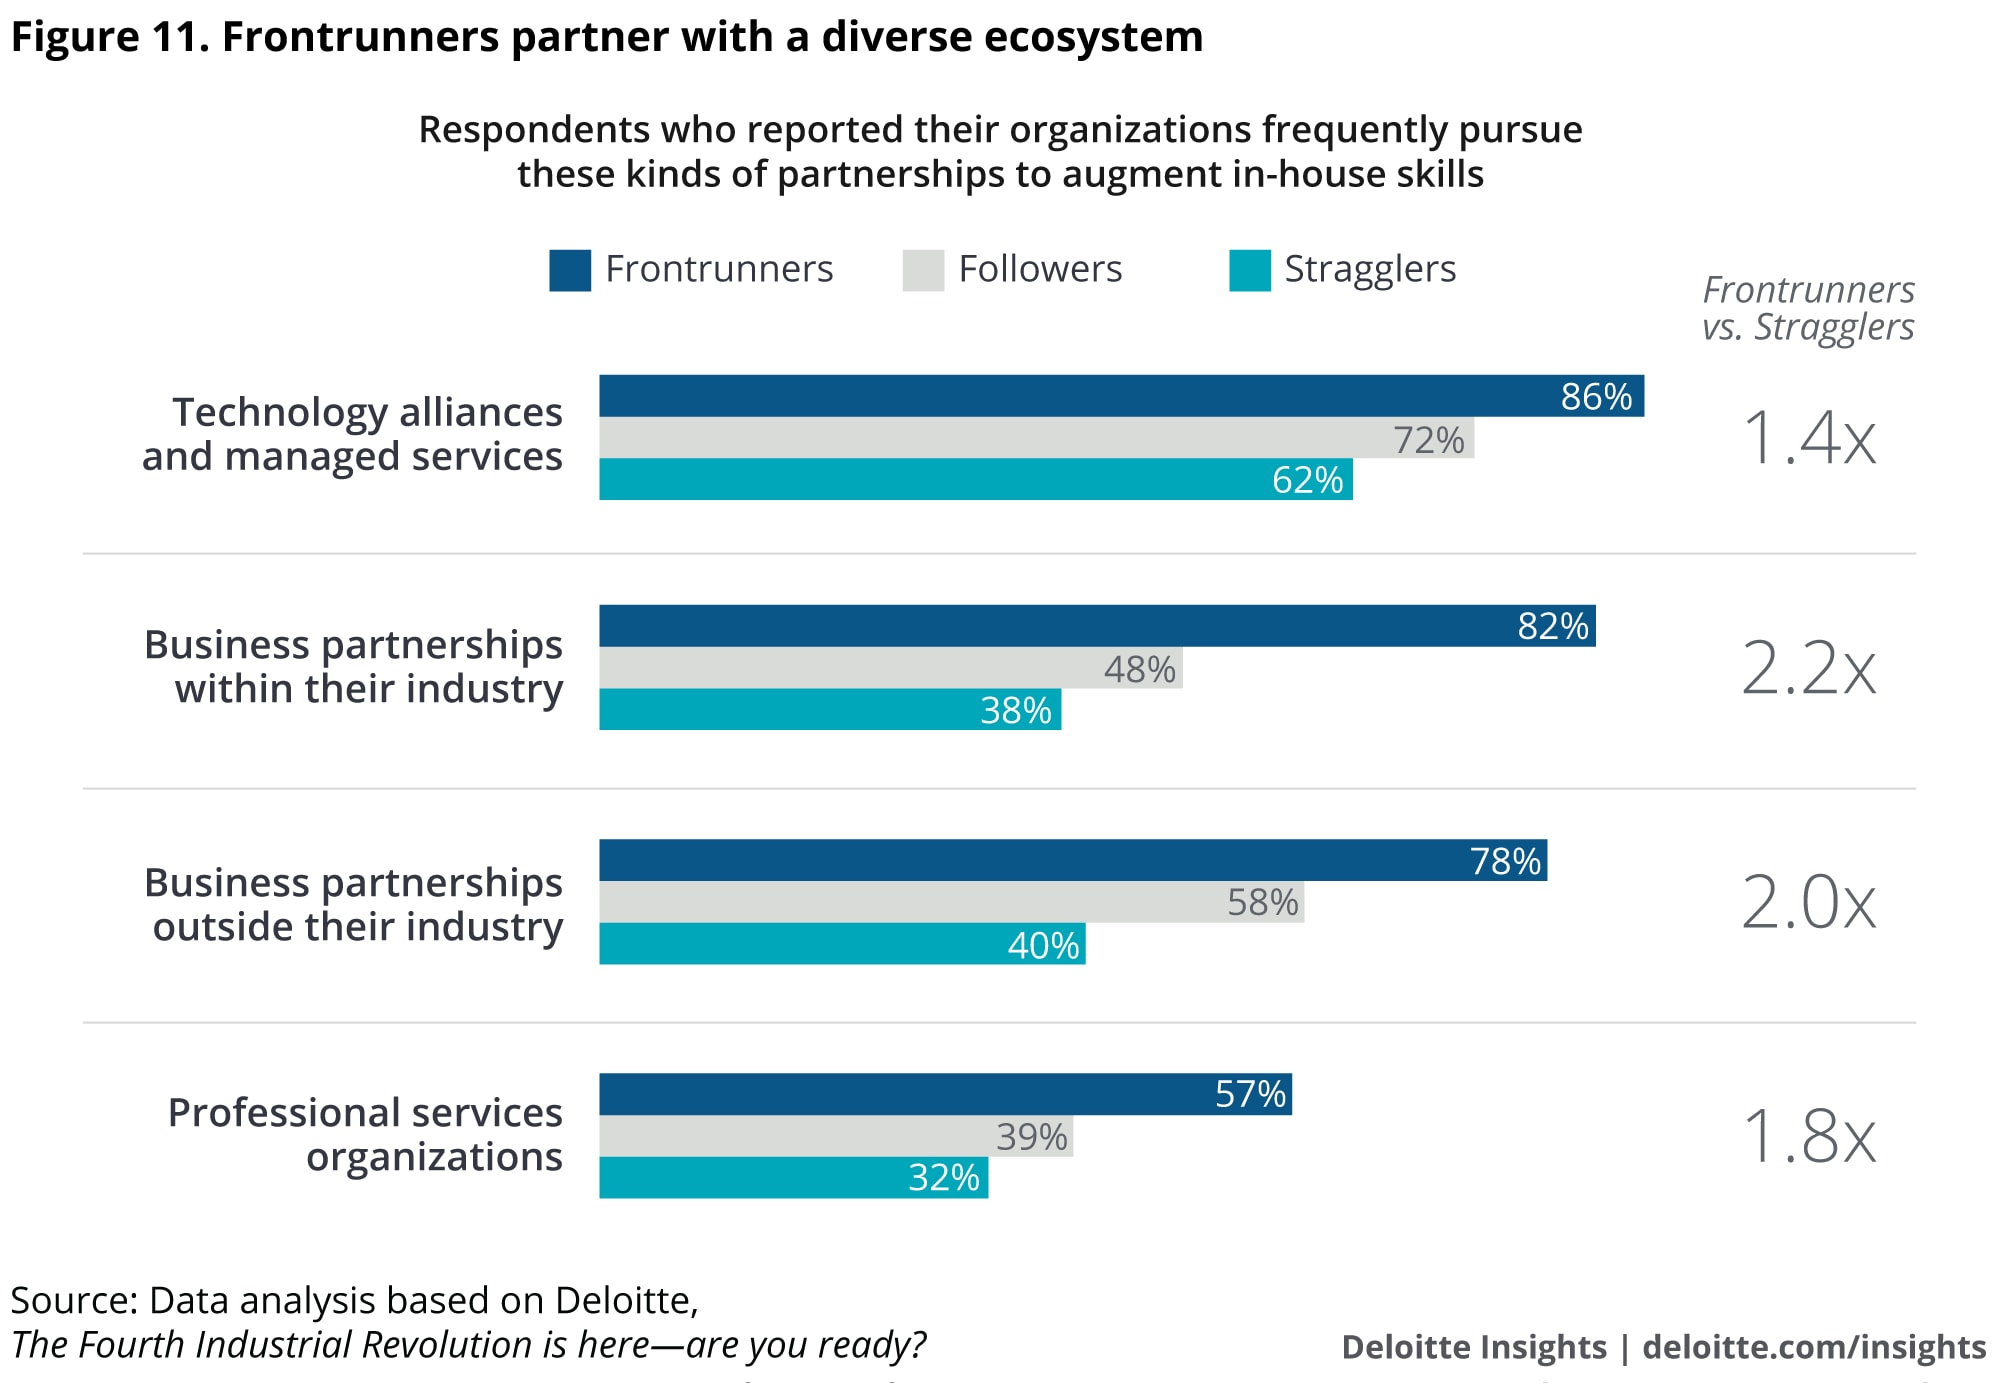 Frontrunners partner with a diverse ecosystem